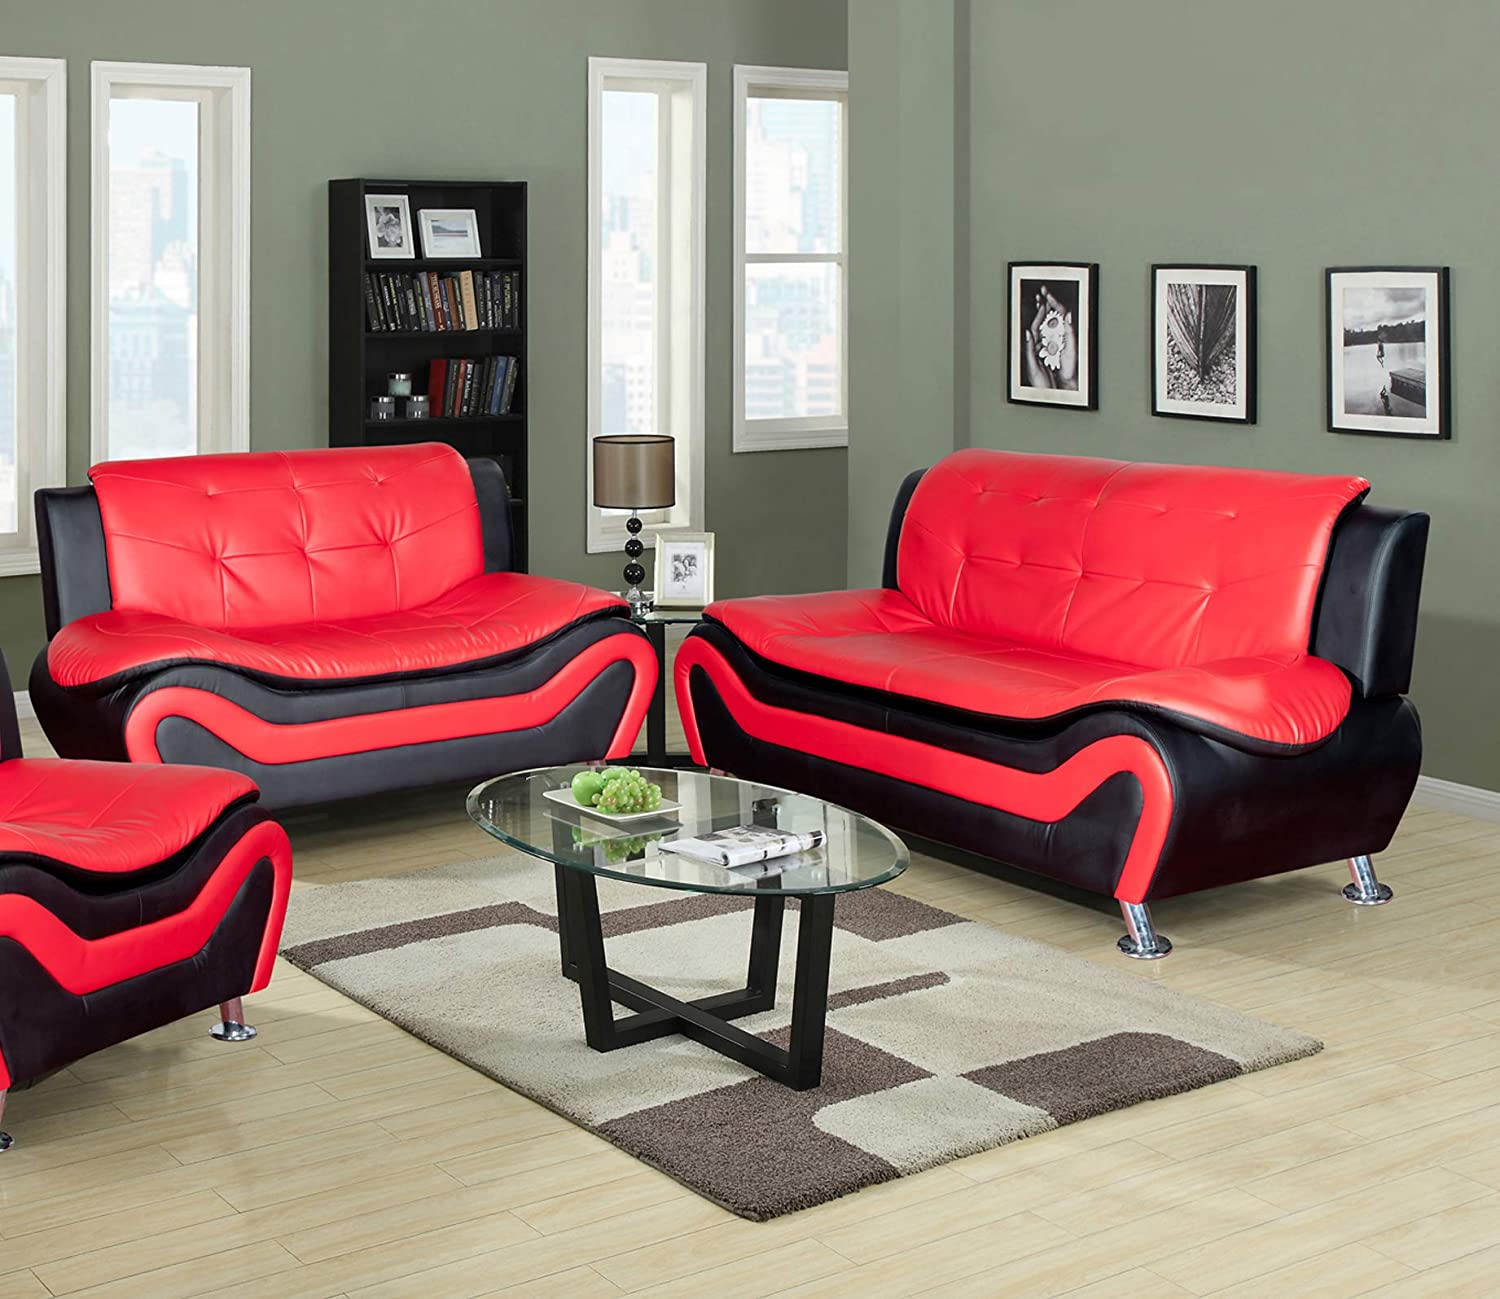 Amazon com lifestyle furniture 2 pieces aldo modern living room sofa and loveseatfaux leatherred blackls4503 2pc kitchen dining